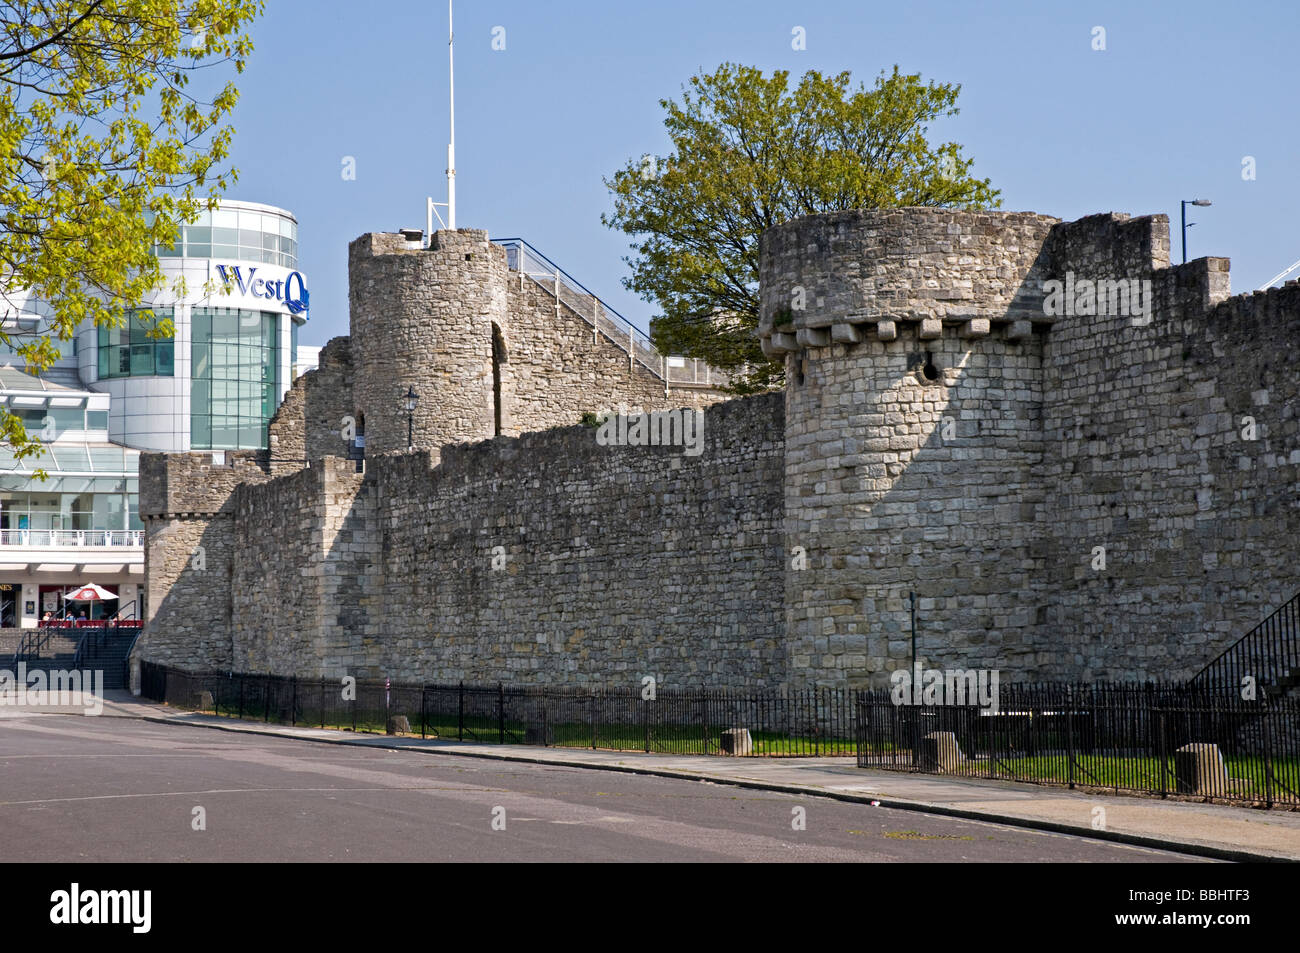 The medieval walls and towers of Southampton Castle contrast with the modern style of the shopping centre - Stock Image